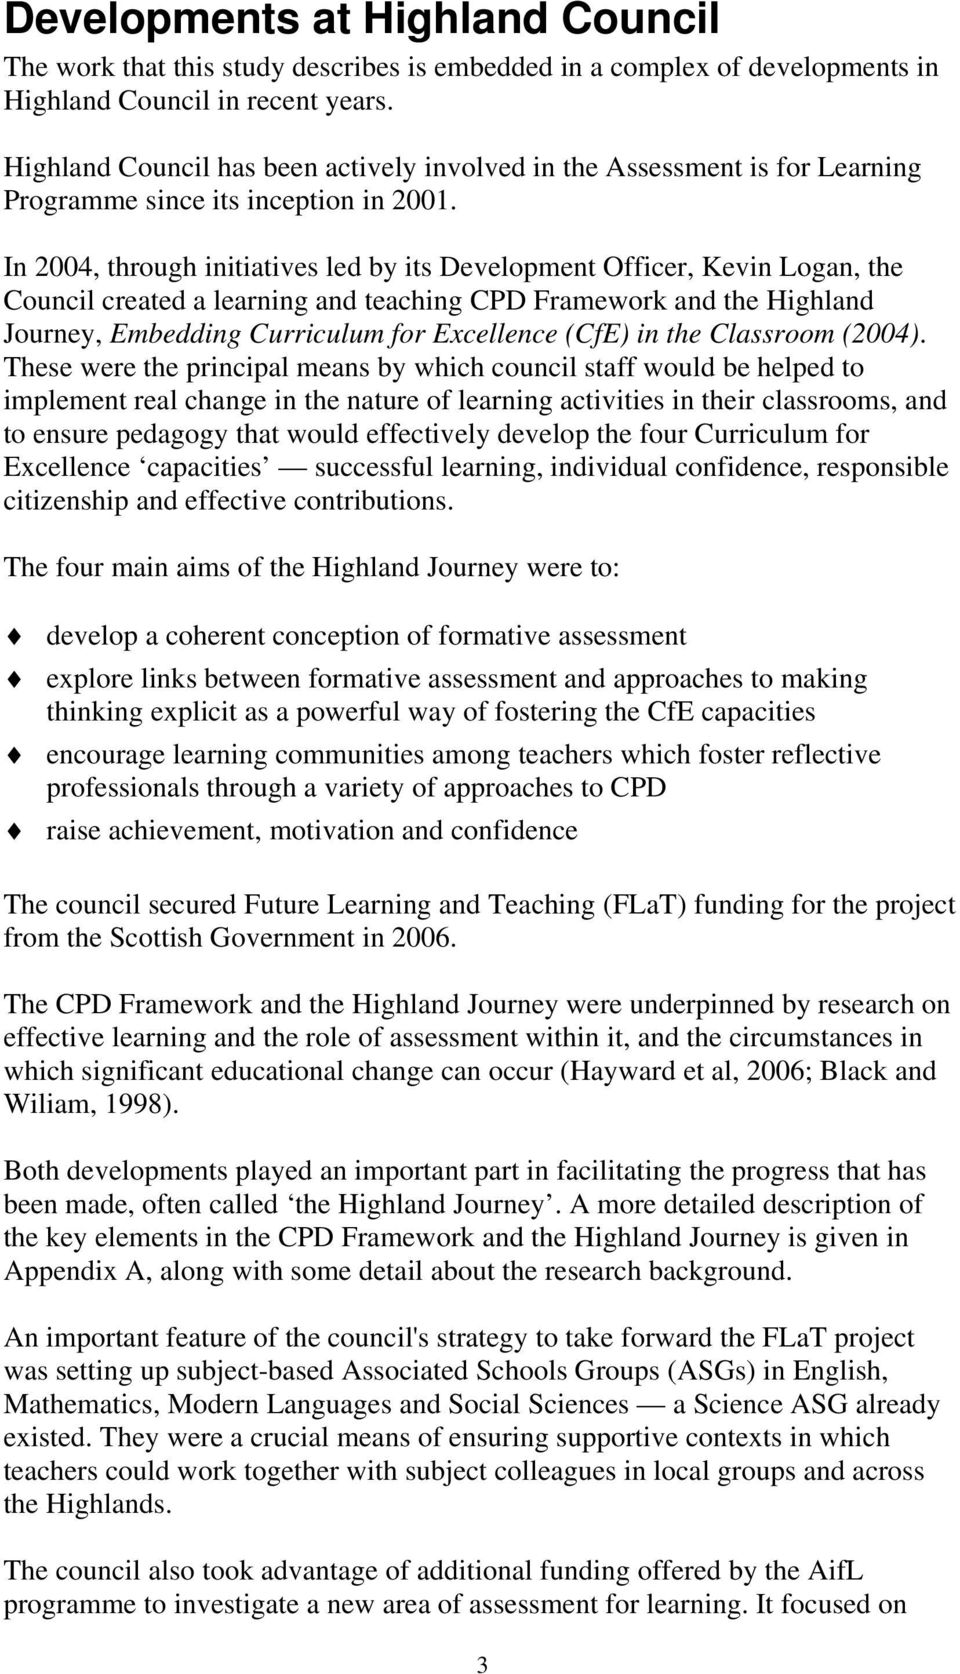 In 2004, through initiatives led by its Development Officer, Kevin Logan, the Council created a learning and teaching CPD Framework and the Highland Journey, Embedding Curriculum for Excellence (CfE)